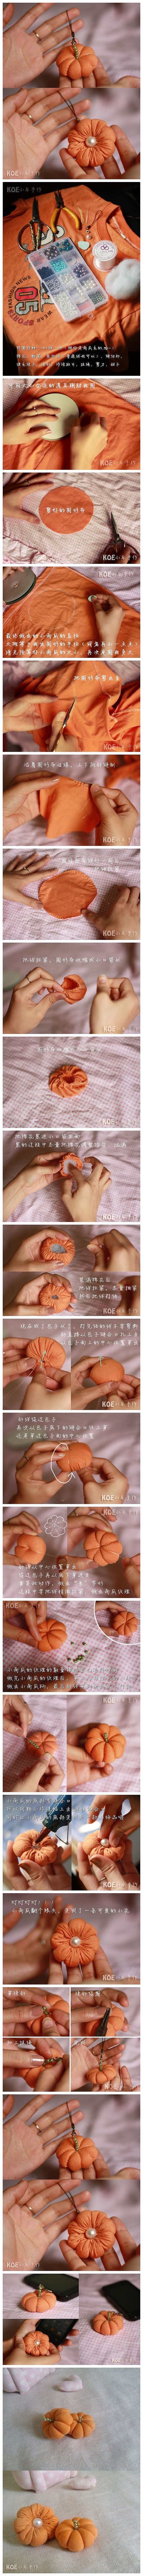 How to make Pumpkin like custom Christmas ornaments with T-Shirt step by step DIY tutorial instructions